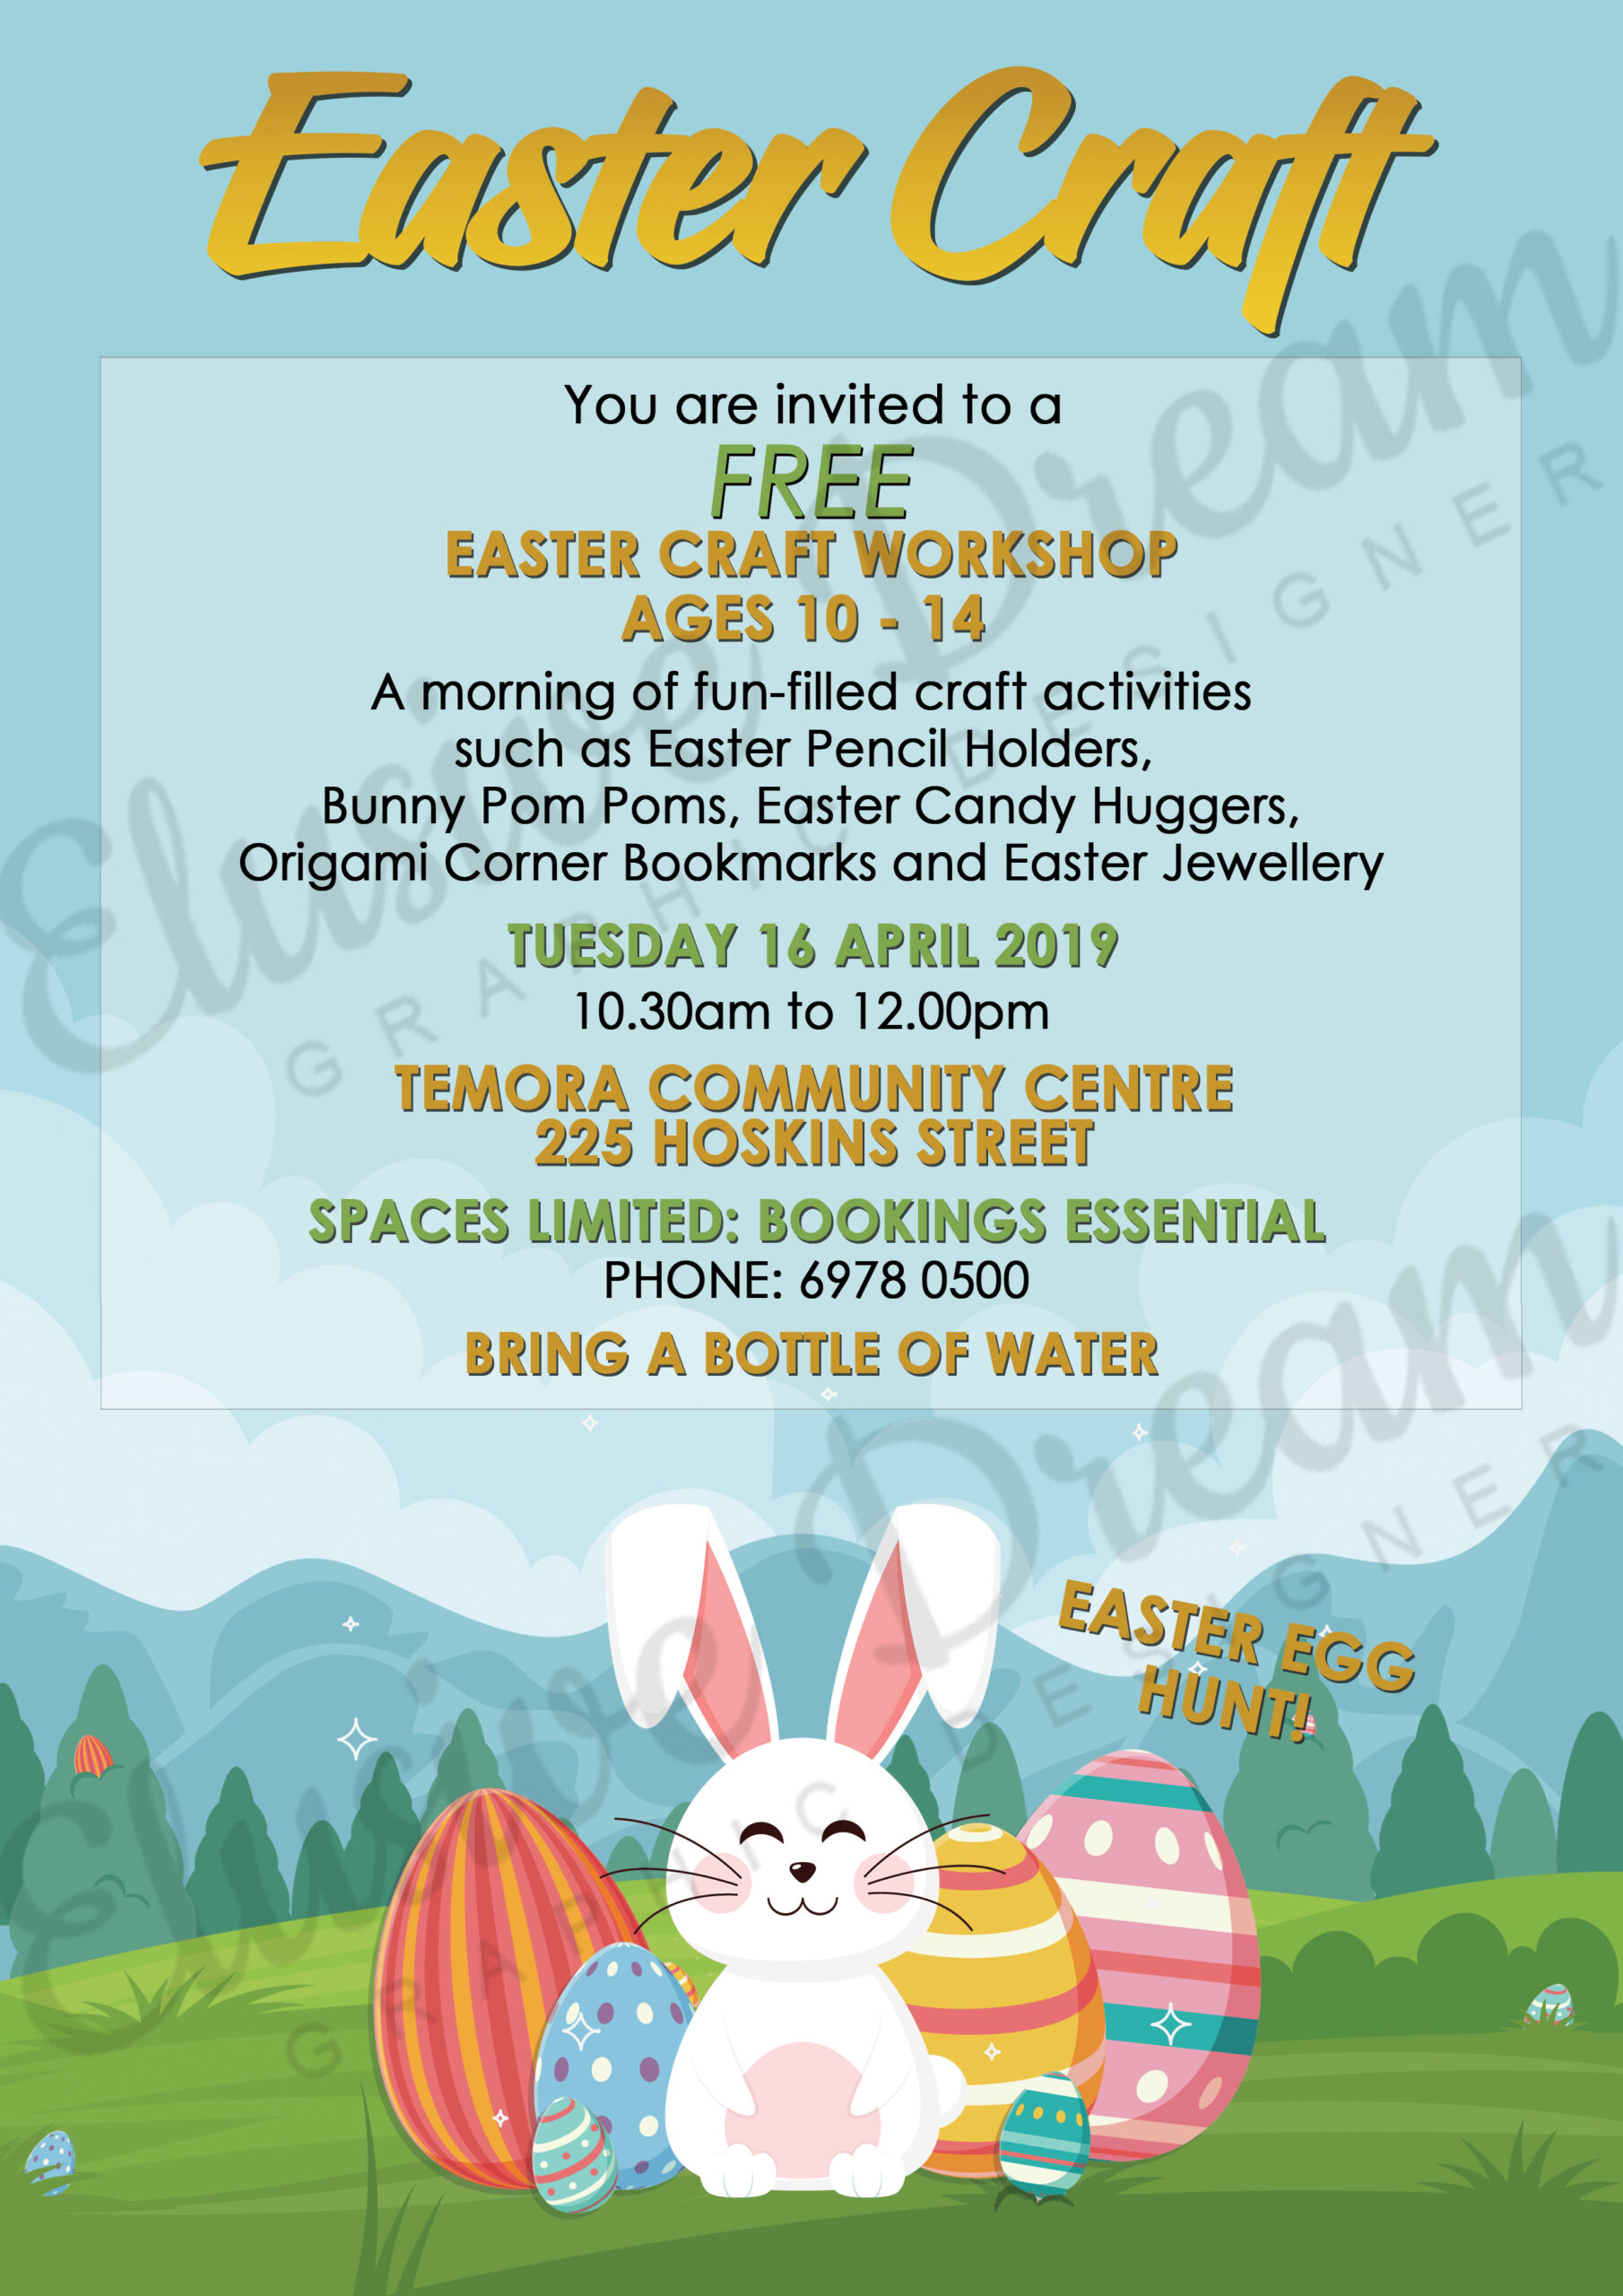 Temora Community Centre Easter Craft Poster 2019.png scaled